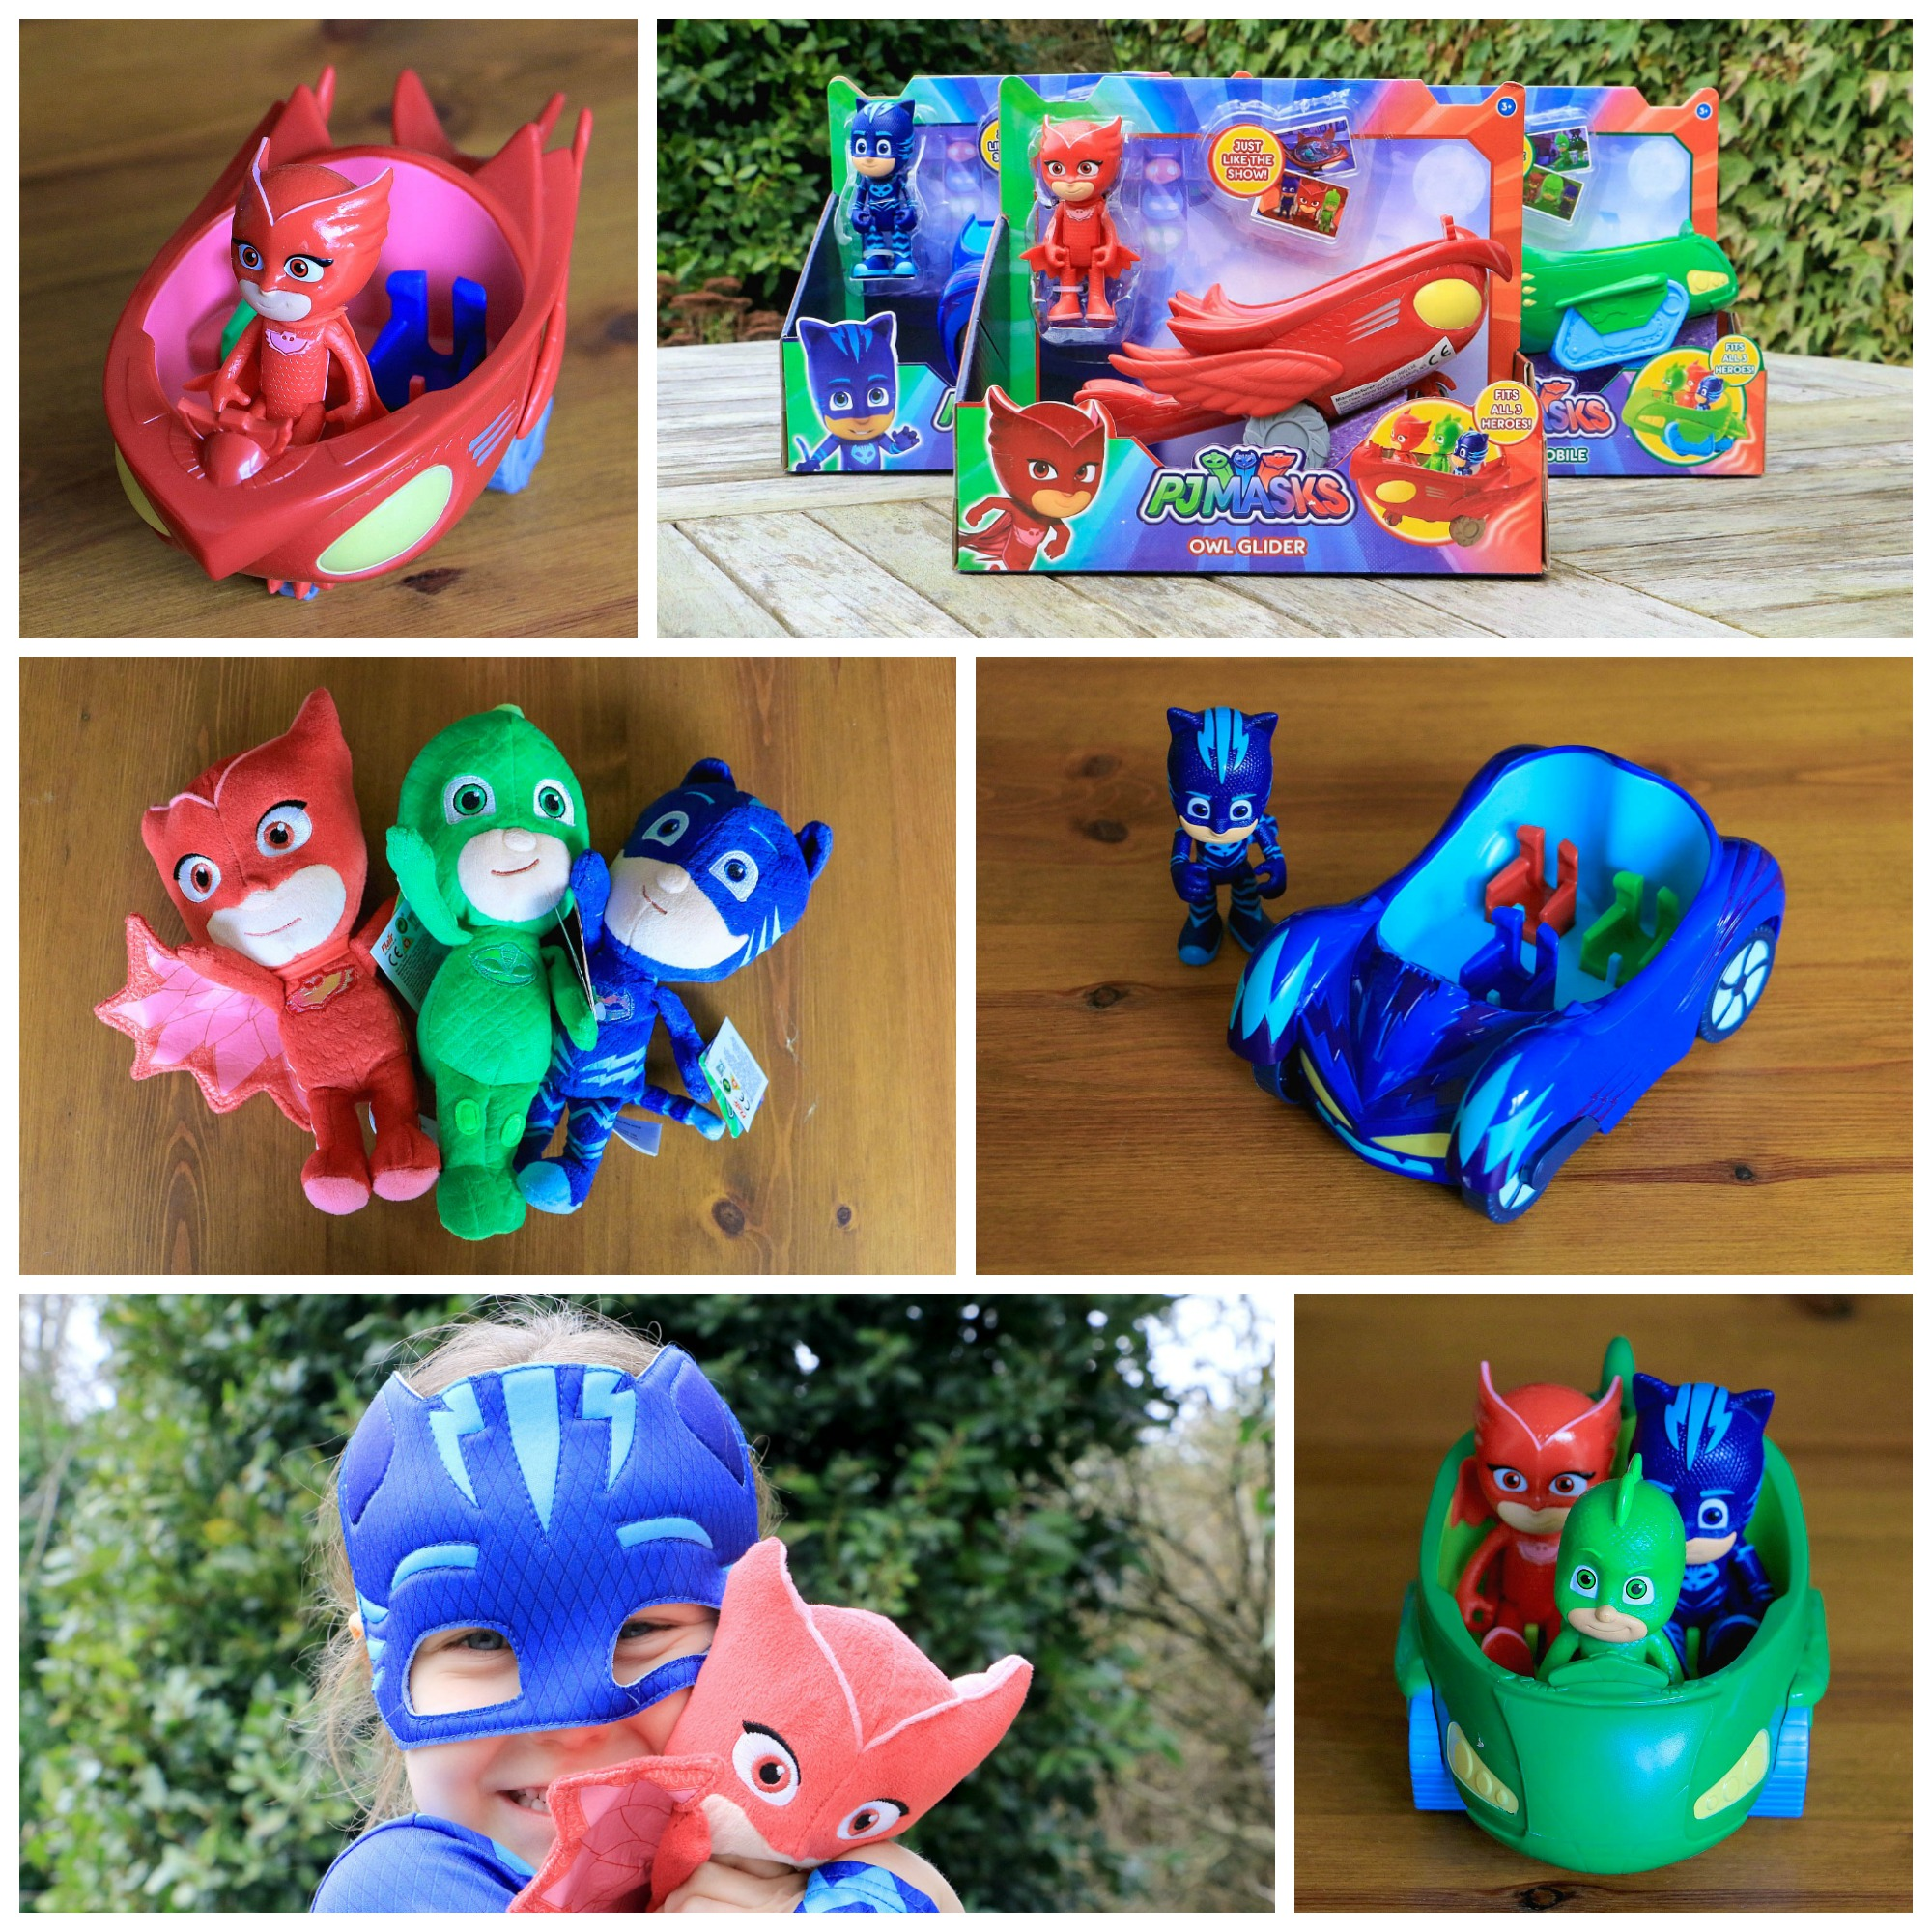 PJ-Masks-Toys-collage-